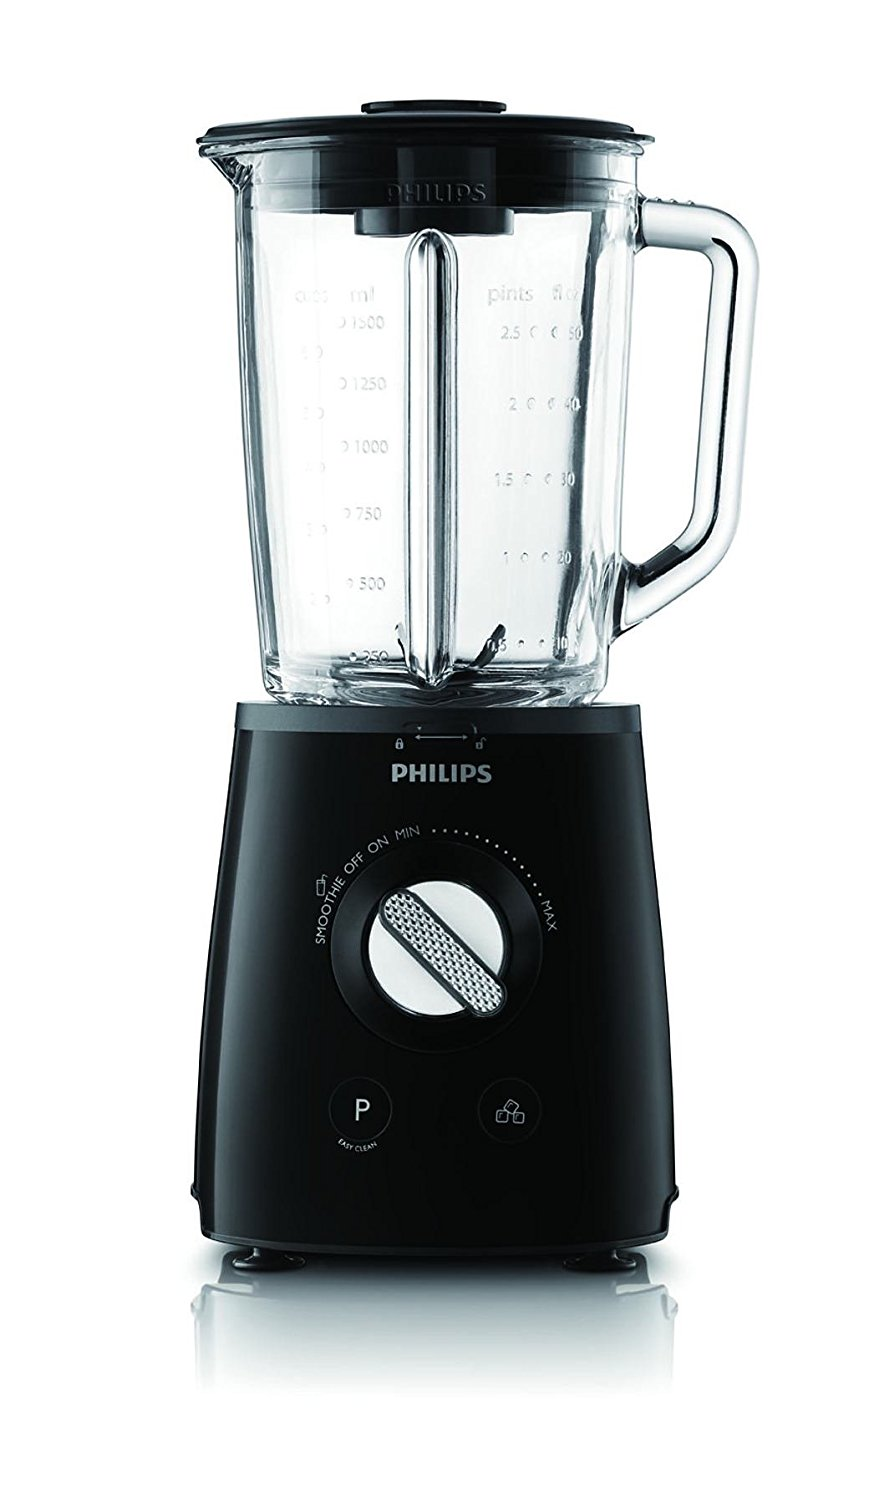 PHILIPS blenderis, 700W (melns) HR 2095/90 Blenderis